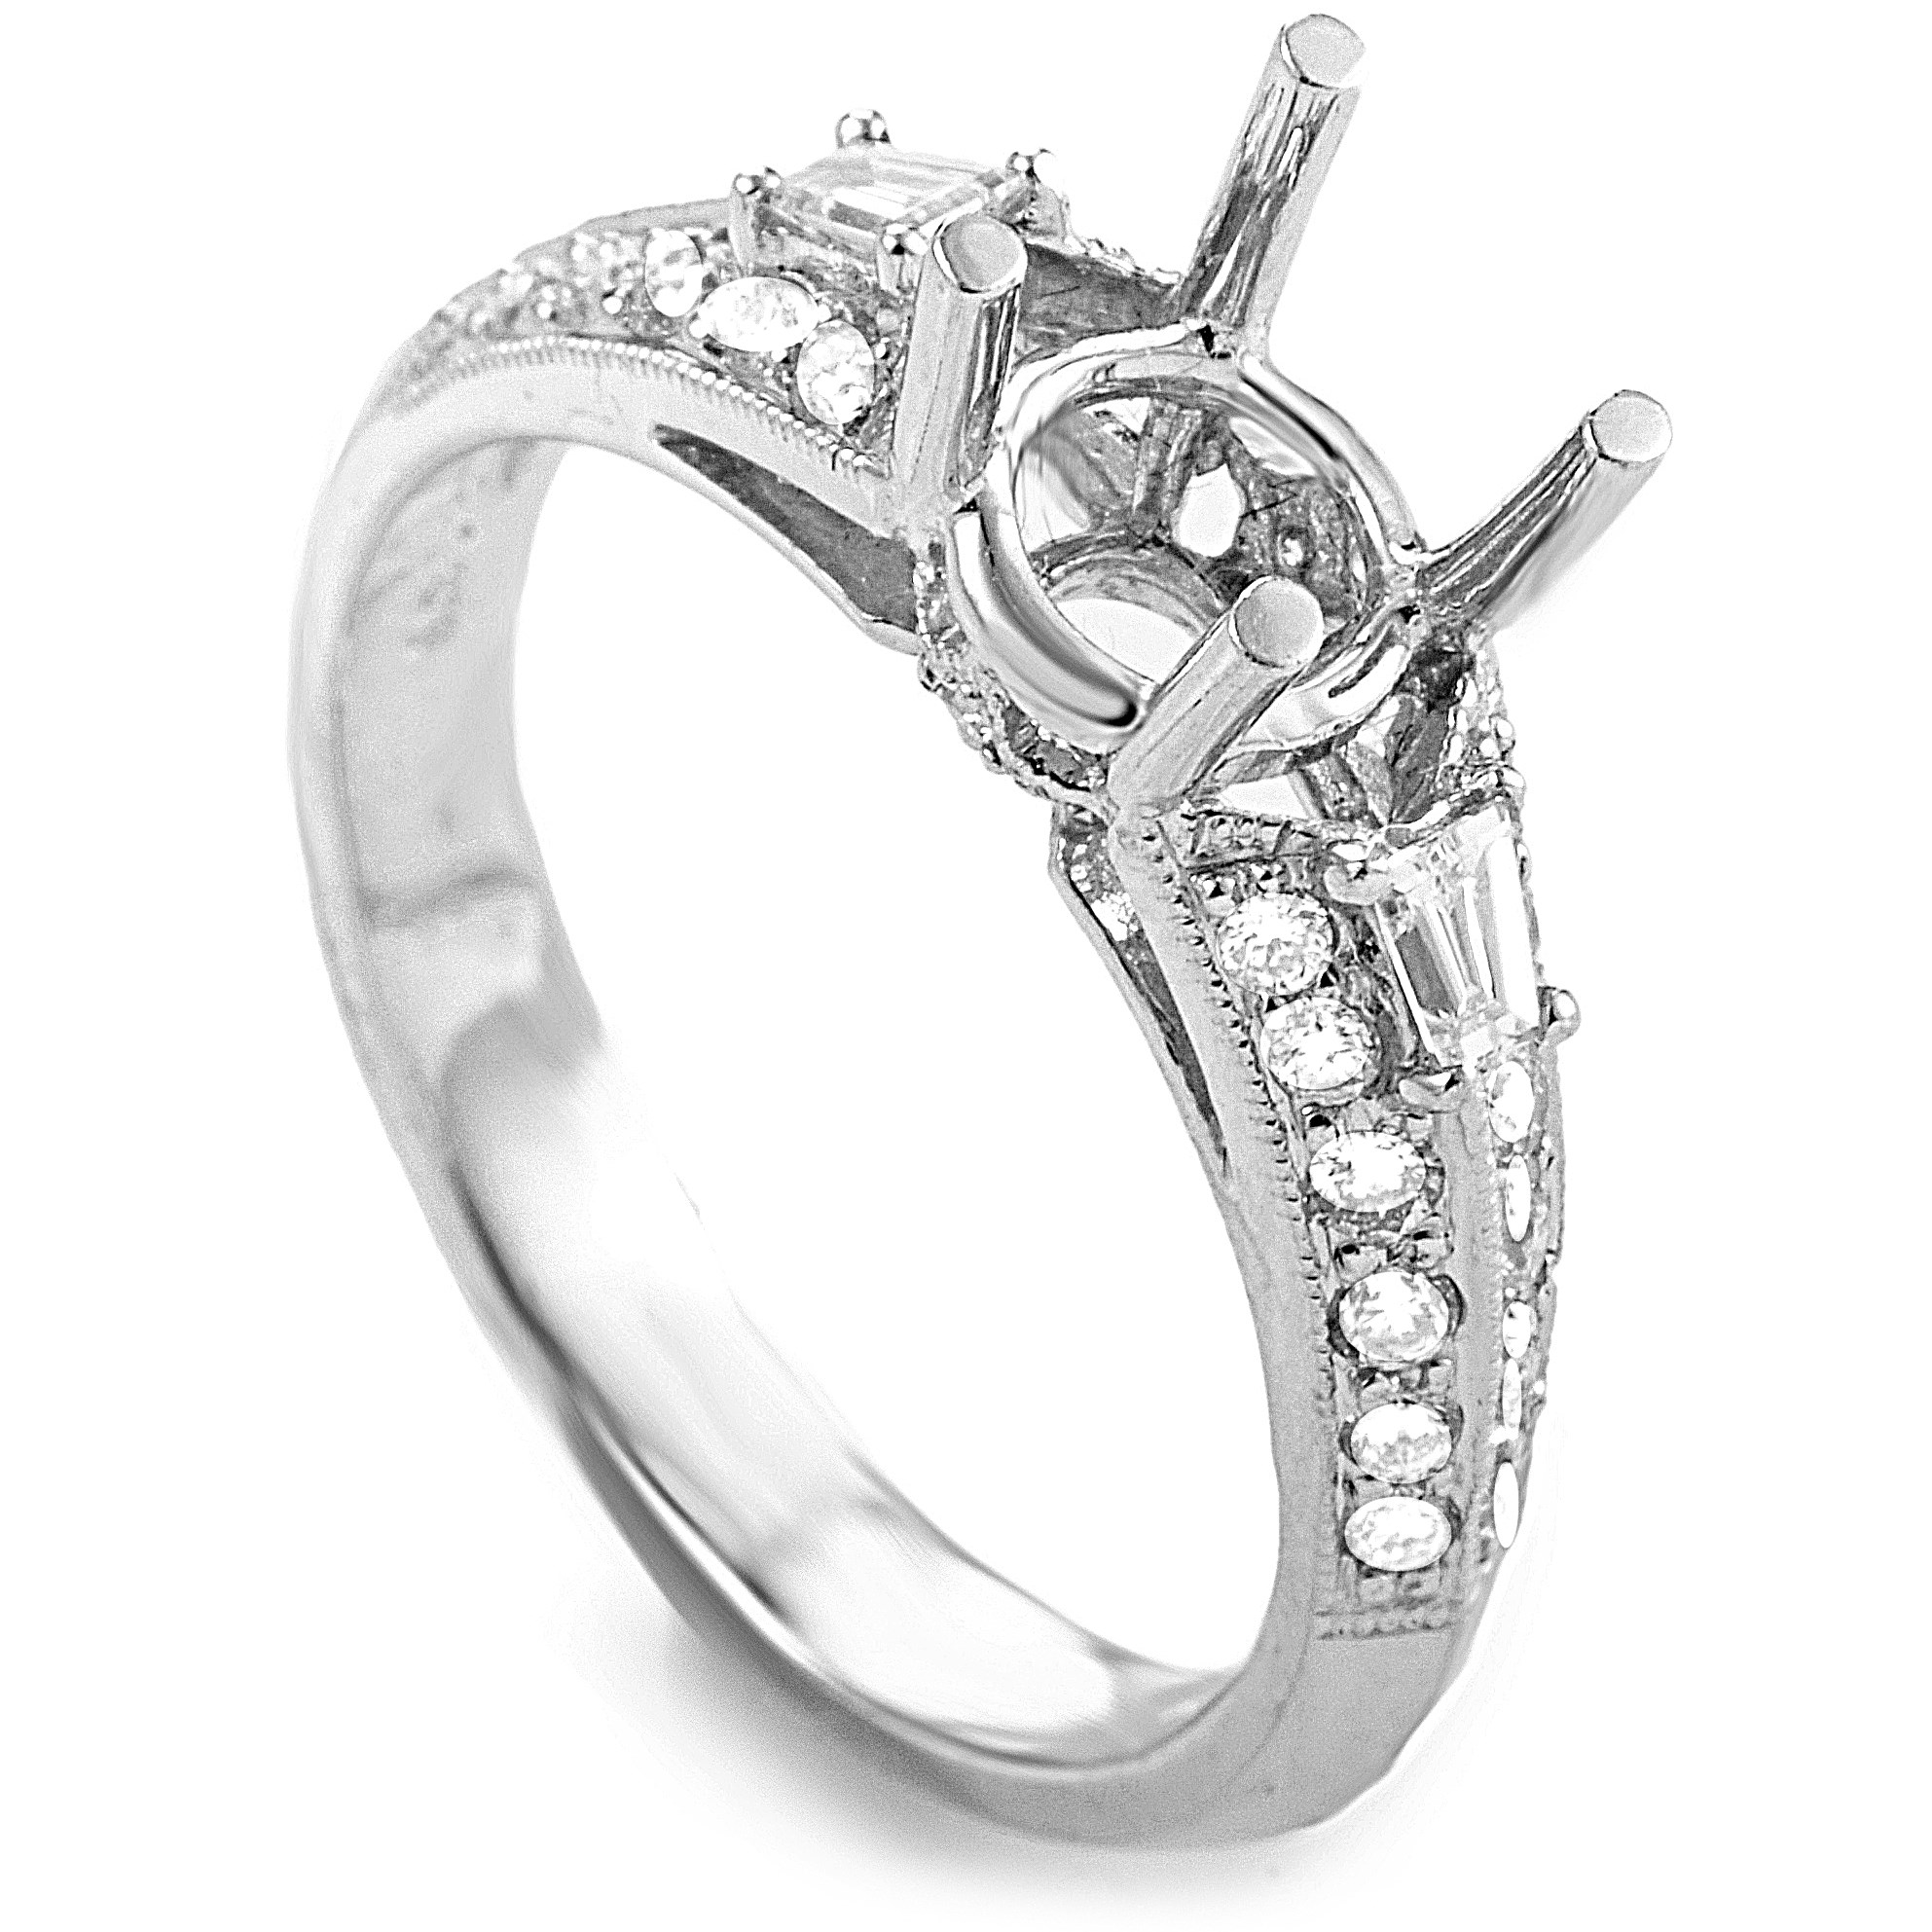 18K White Gold & Diamond Engagement Ring Semi-Mount SM8-041261W